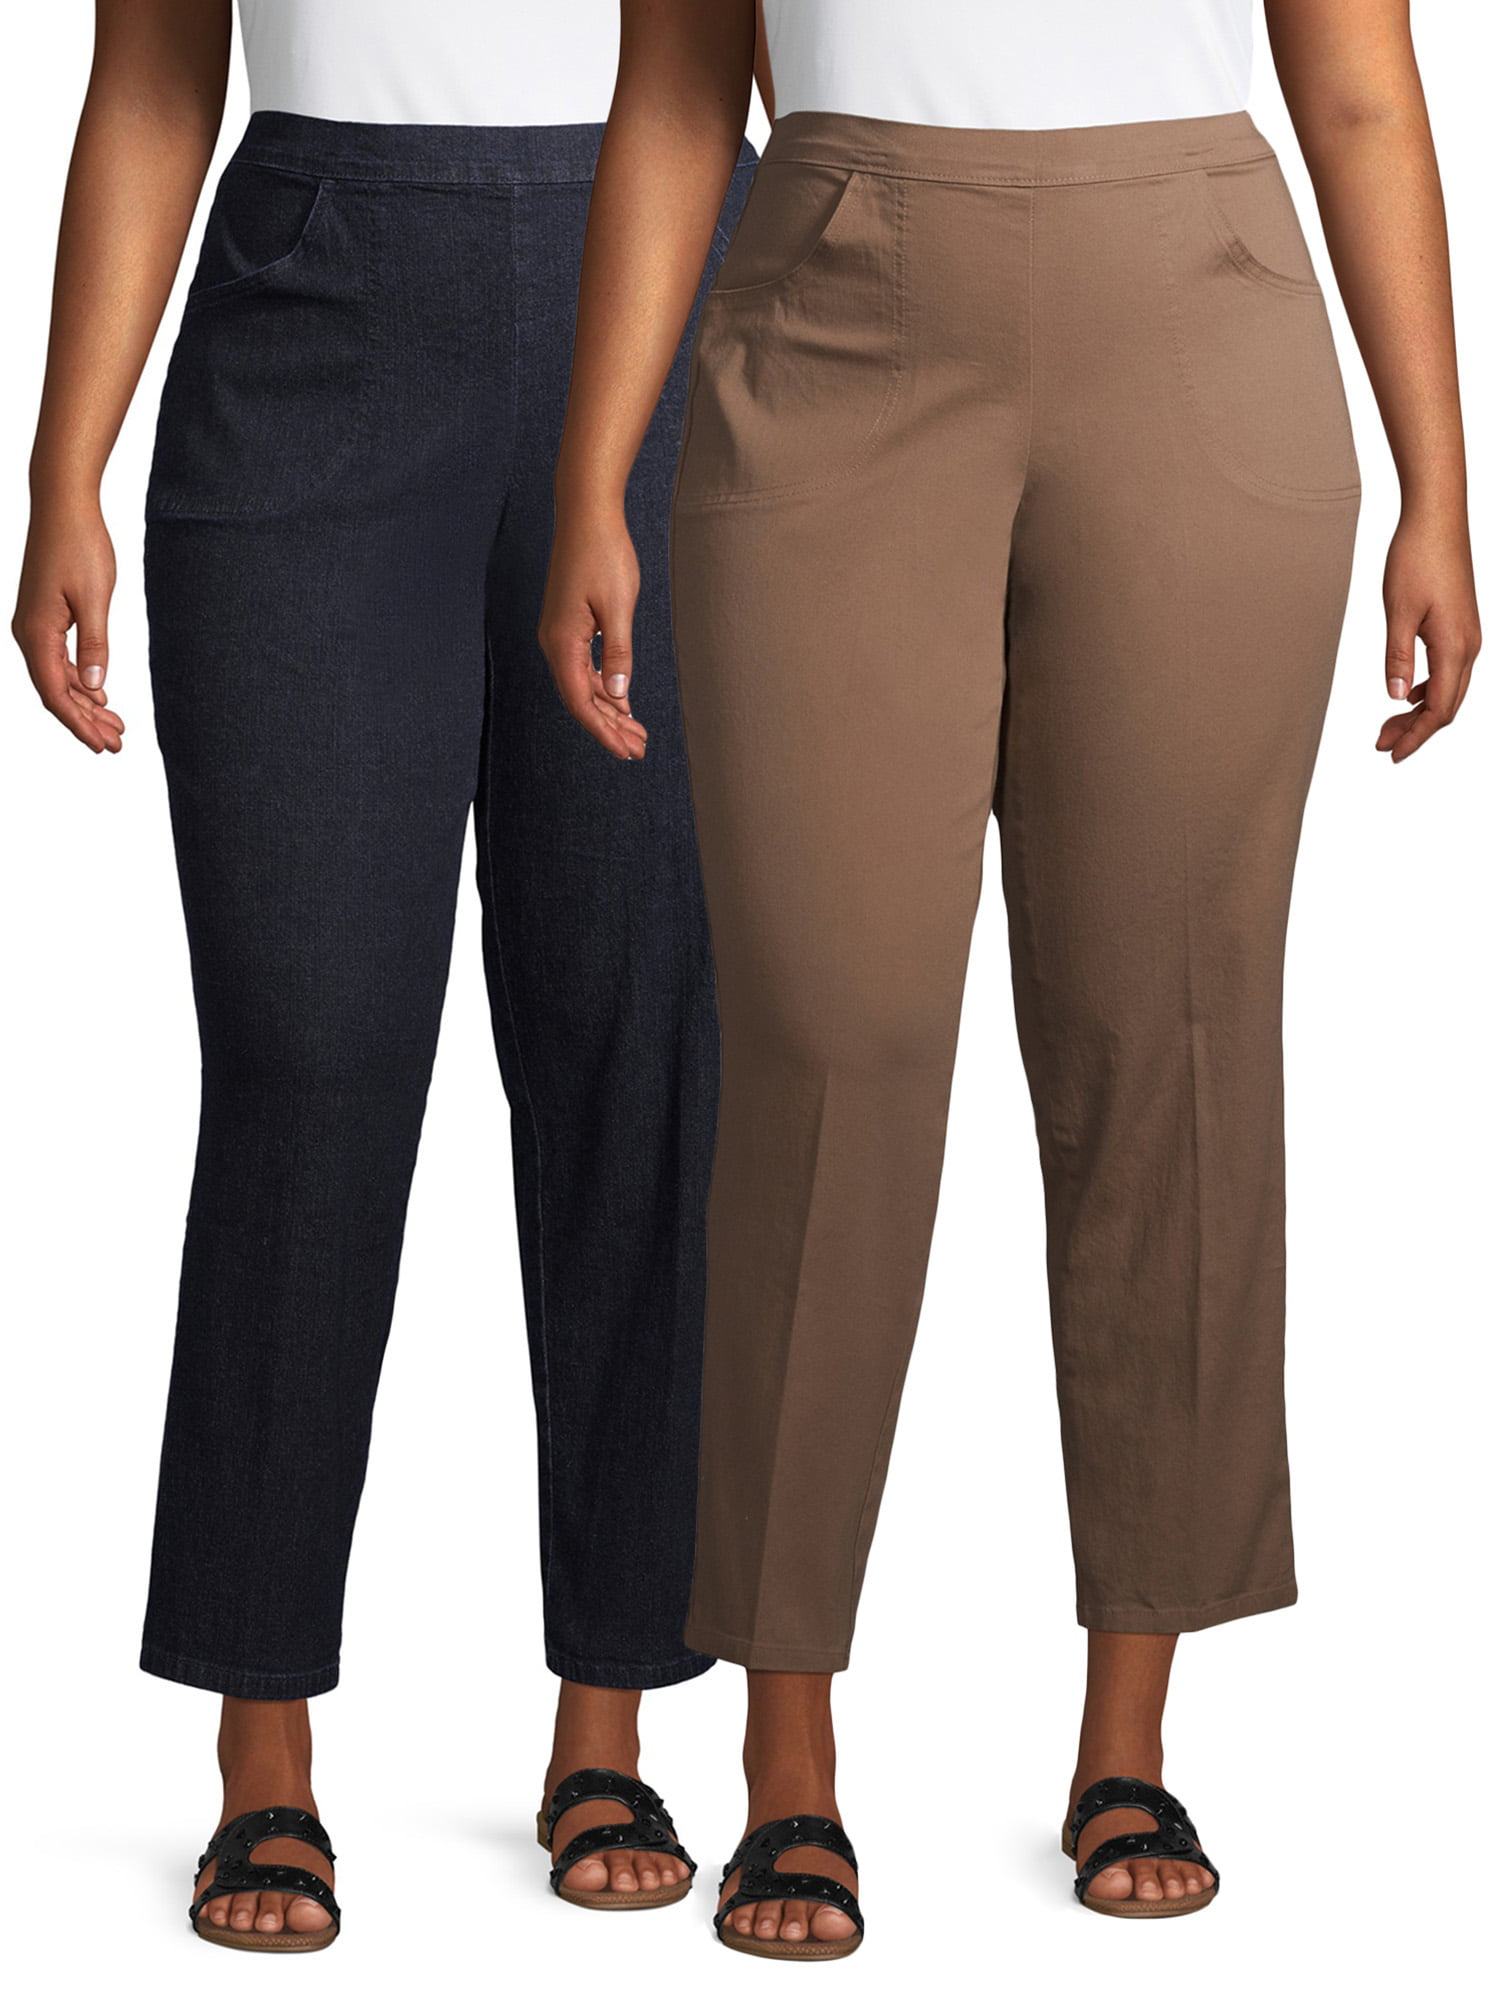 WOMENS LADIES PULL ON BOOTLEG RIBBED SLIM FIT TROUSERS SMART WORK TAPERED PANTS